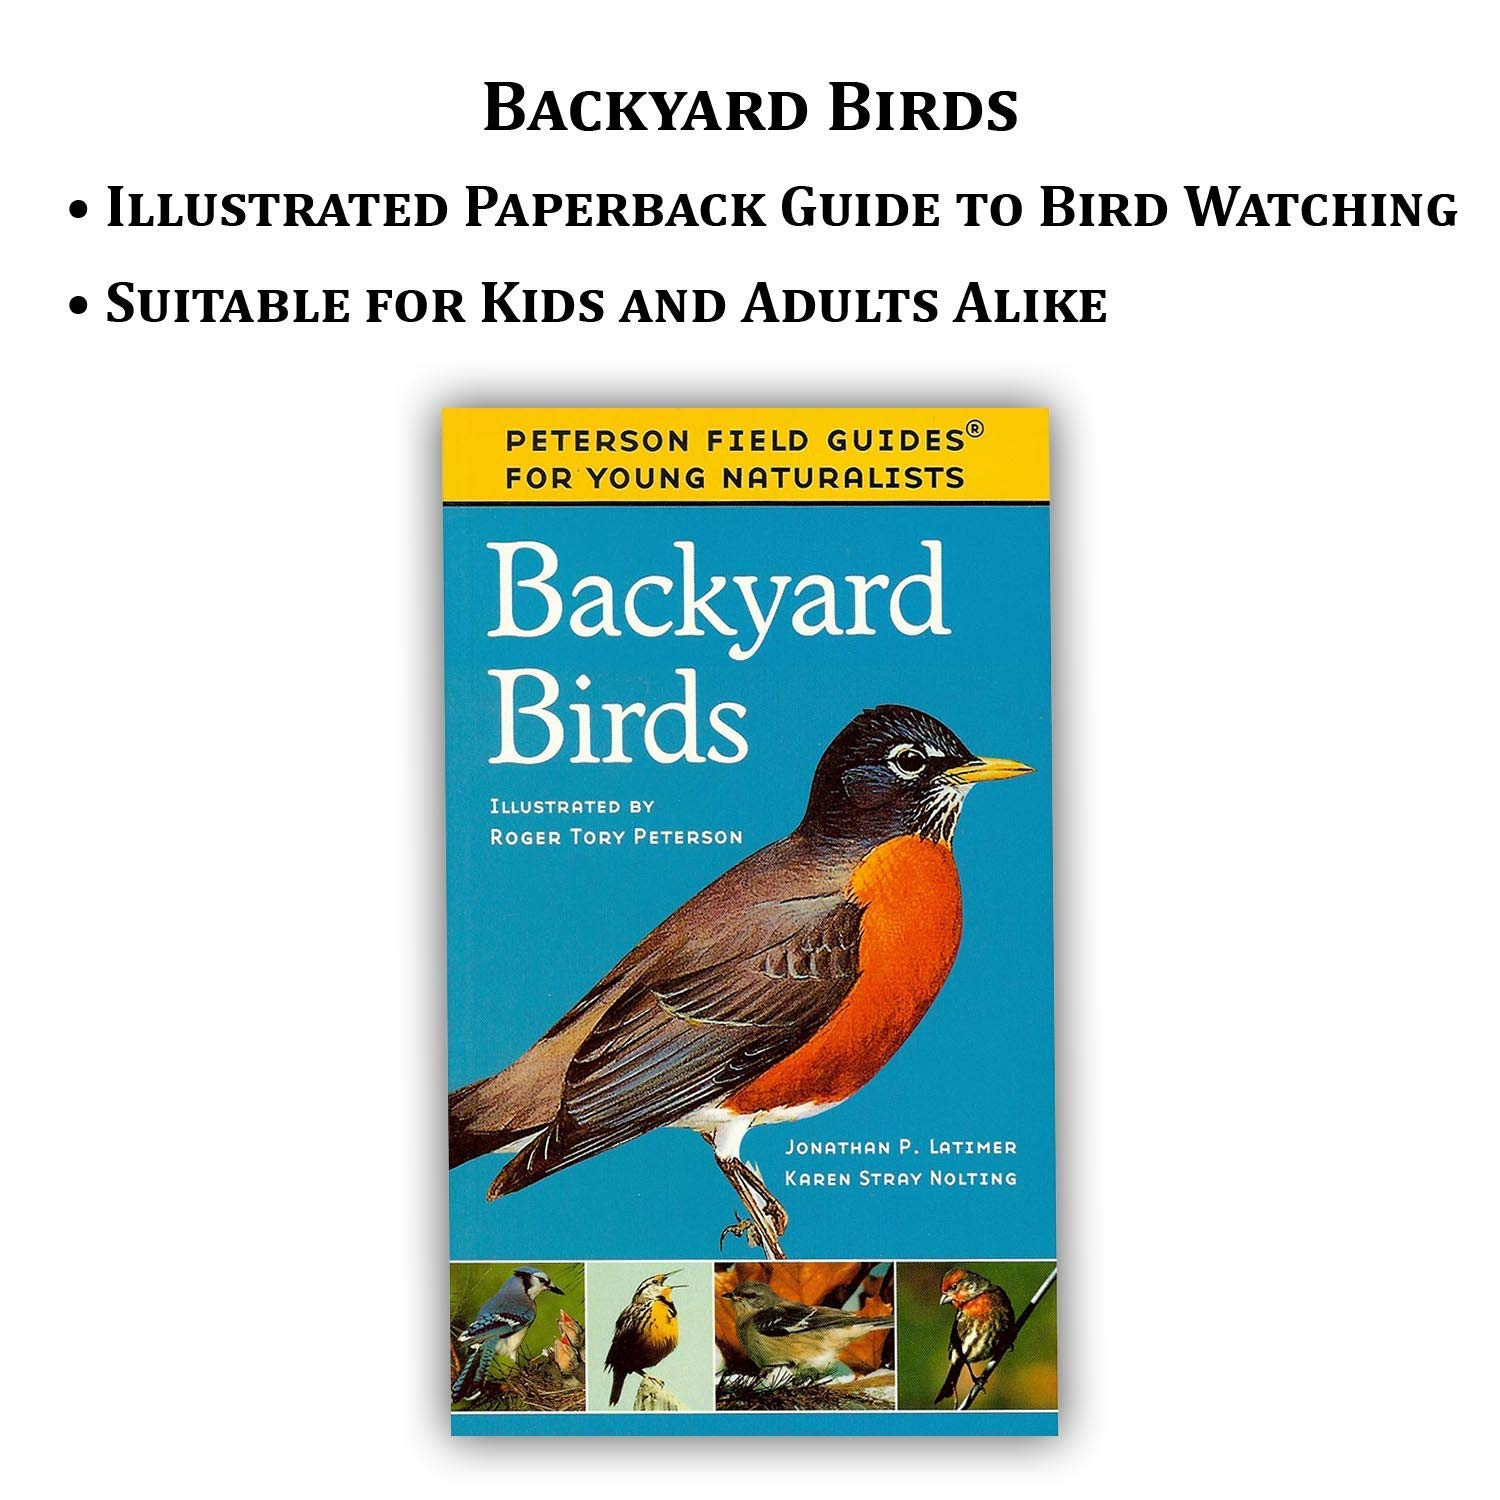 Strap + Backyard Birds Bestselling Guide Book Swabs Beginners Cloth 8x21 Compact Binoculars Travel Case Bird Watching Kit Adults Essential Outdoor Gift Set for Kids Lens Care Spray